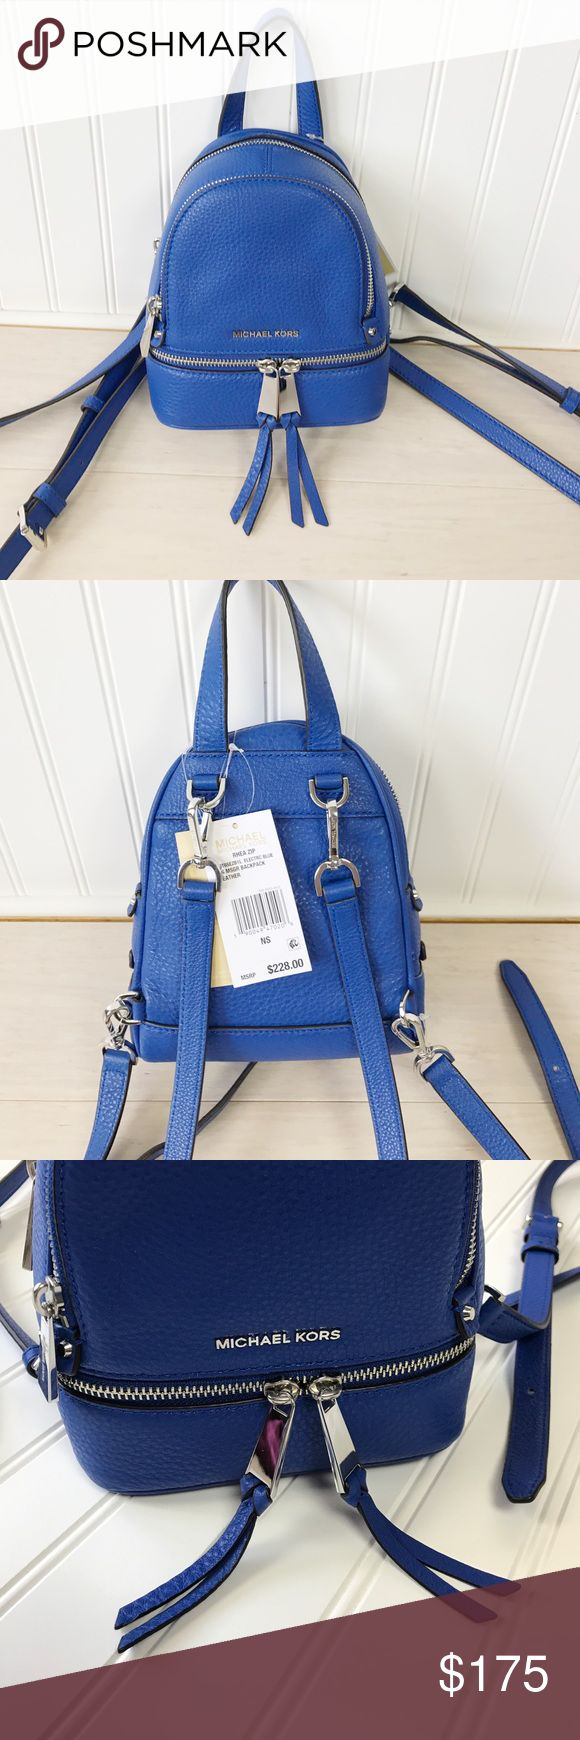 """Michael Kors xs messenger backpack! Beautiful, NWT, extra small Michael Kors Rhea Zip Electric Blue leather convertible messenger/ backpack. By moving the straps, it changes from a backpack to a crossbody style. Features: *Electric Blue leather *7"""" lon"""